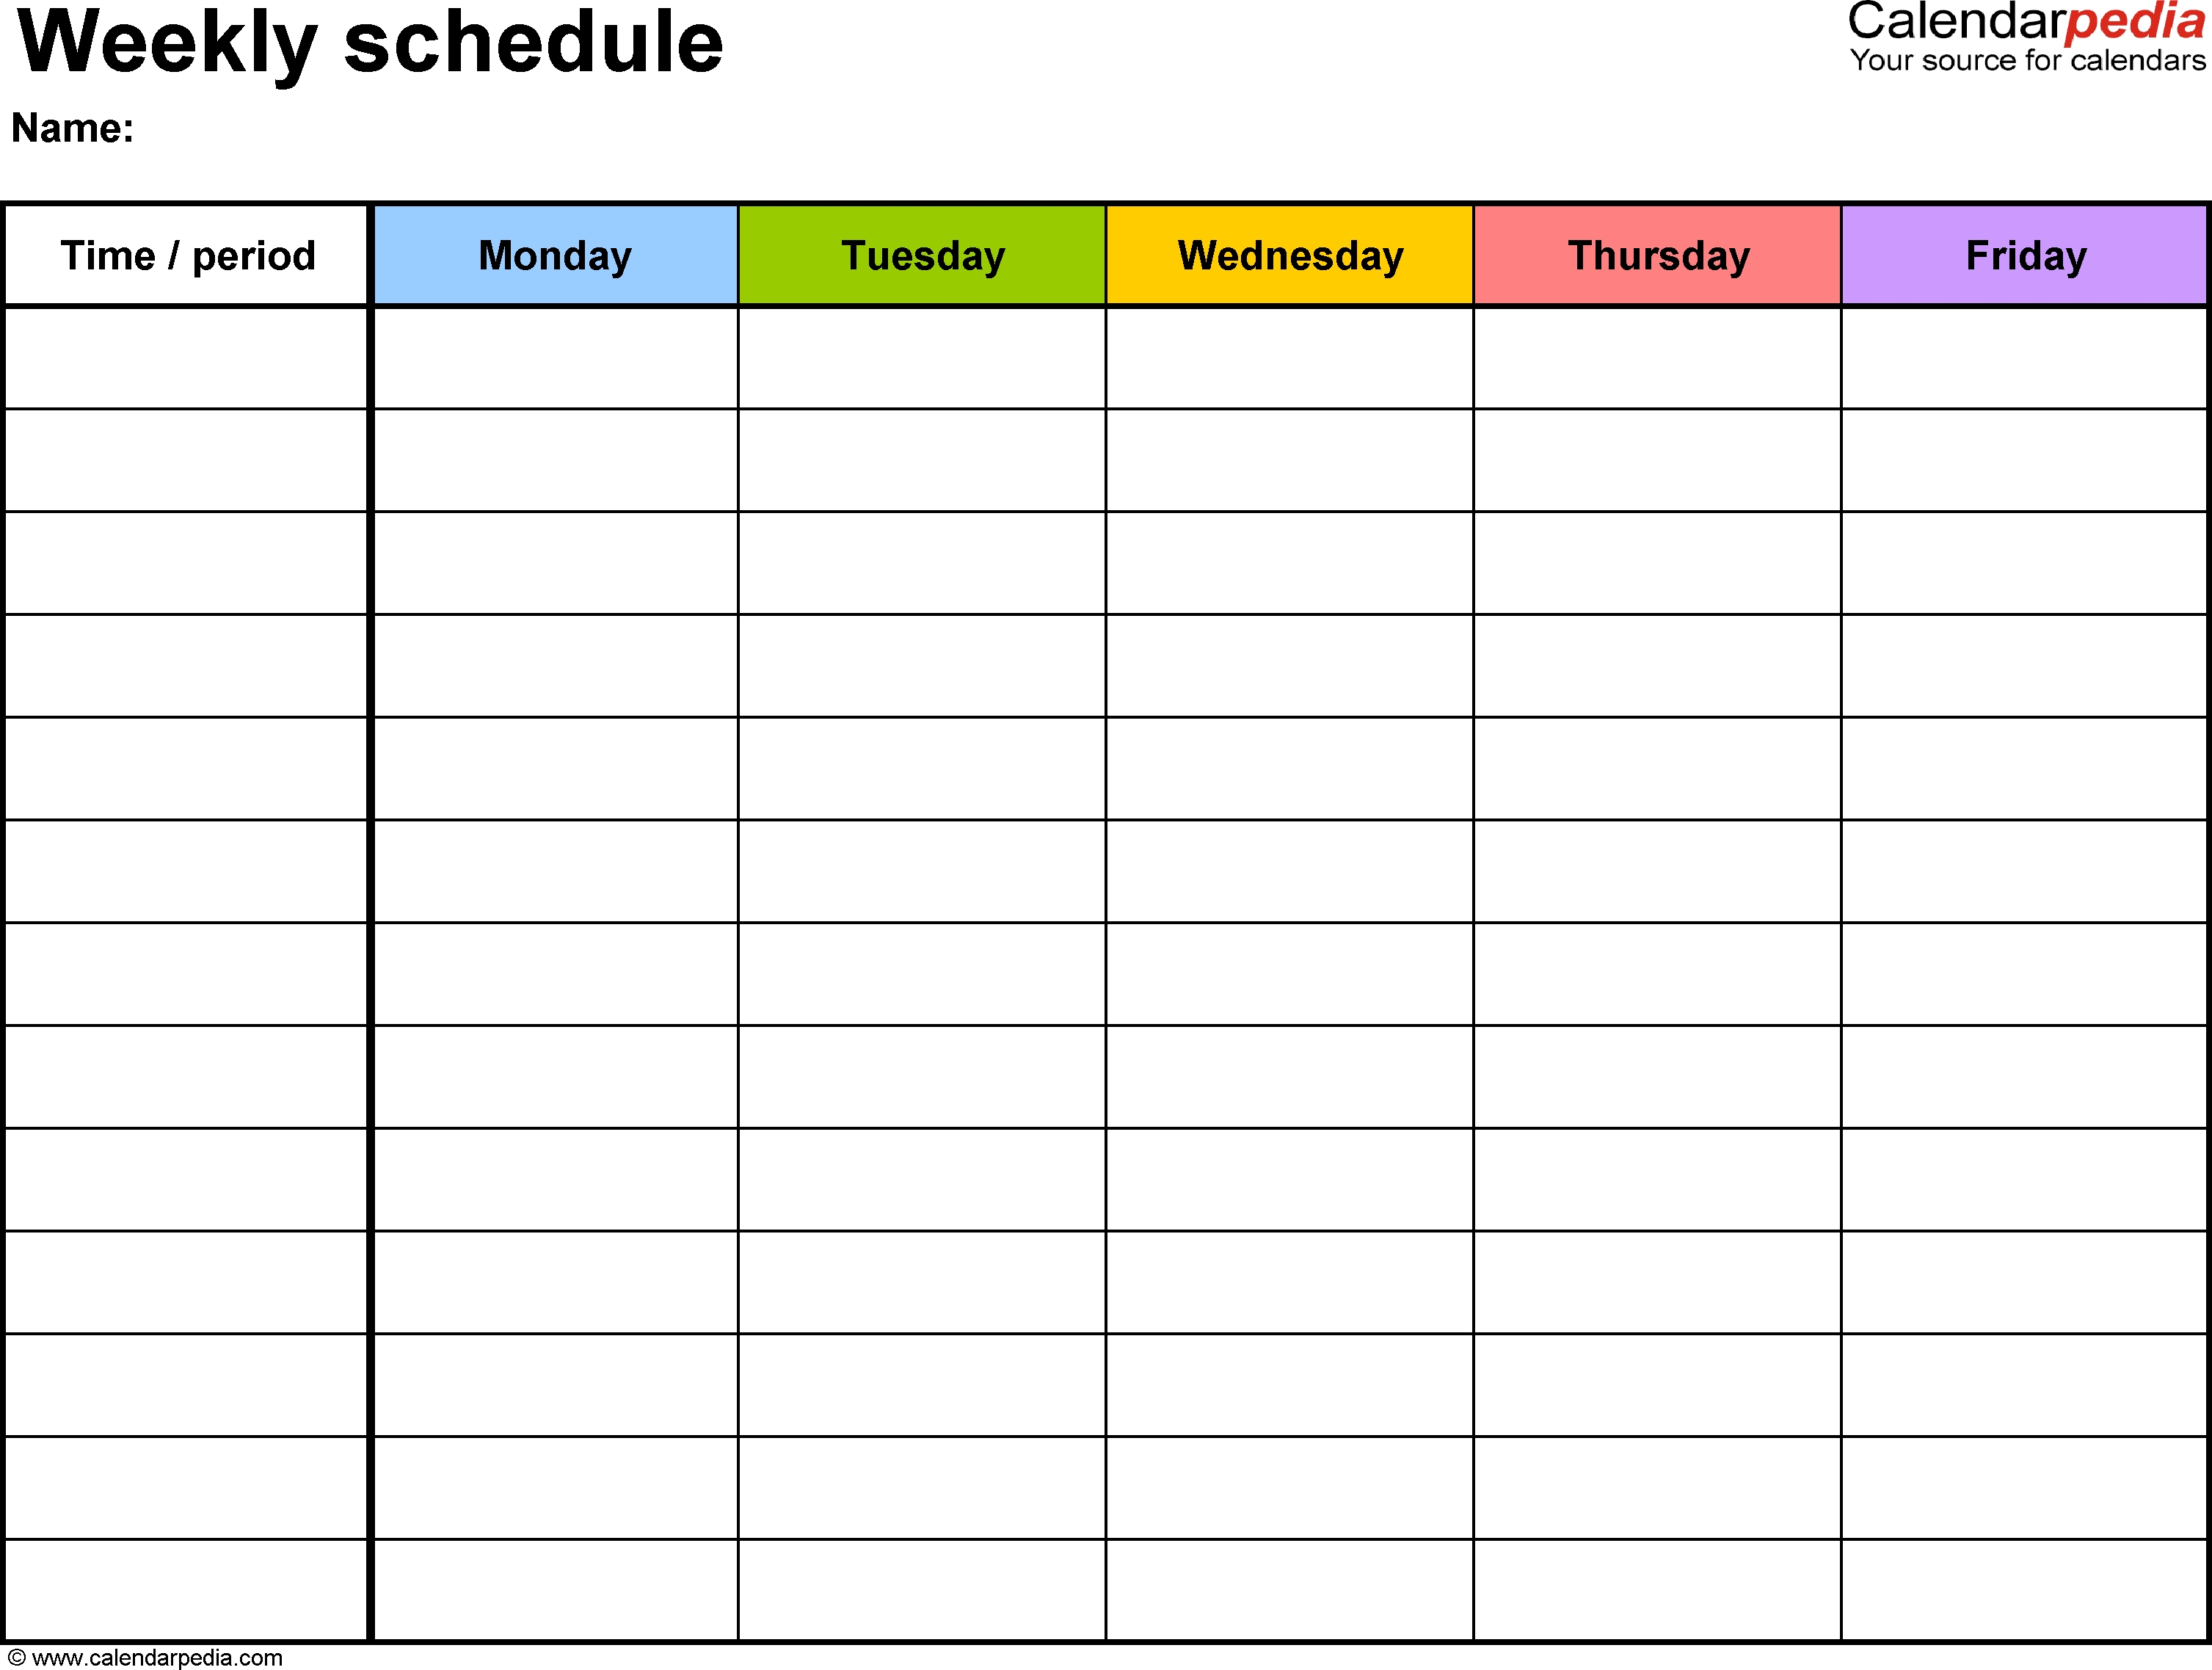 Free Weekly Schedule Templates For Word - 18 Templates pertaining to Monday Through Friday Planner Template